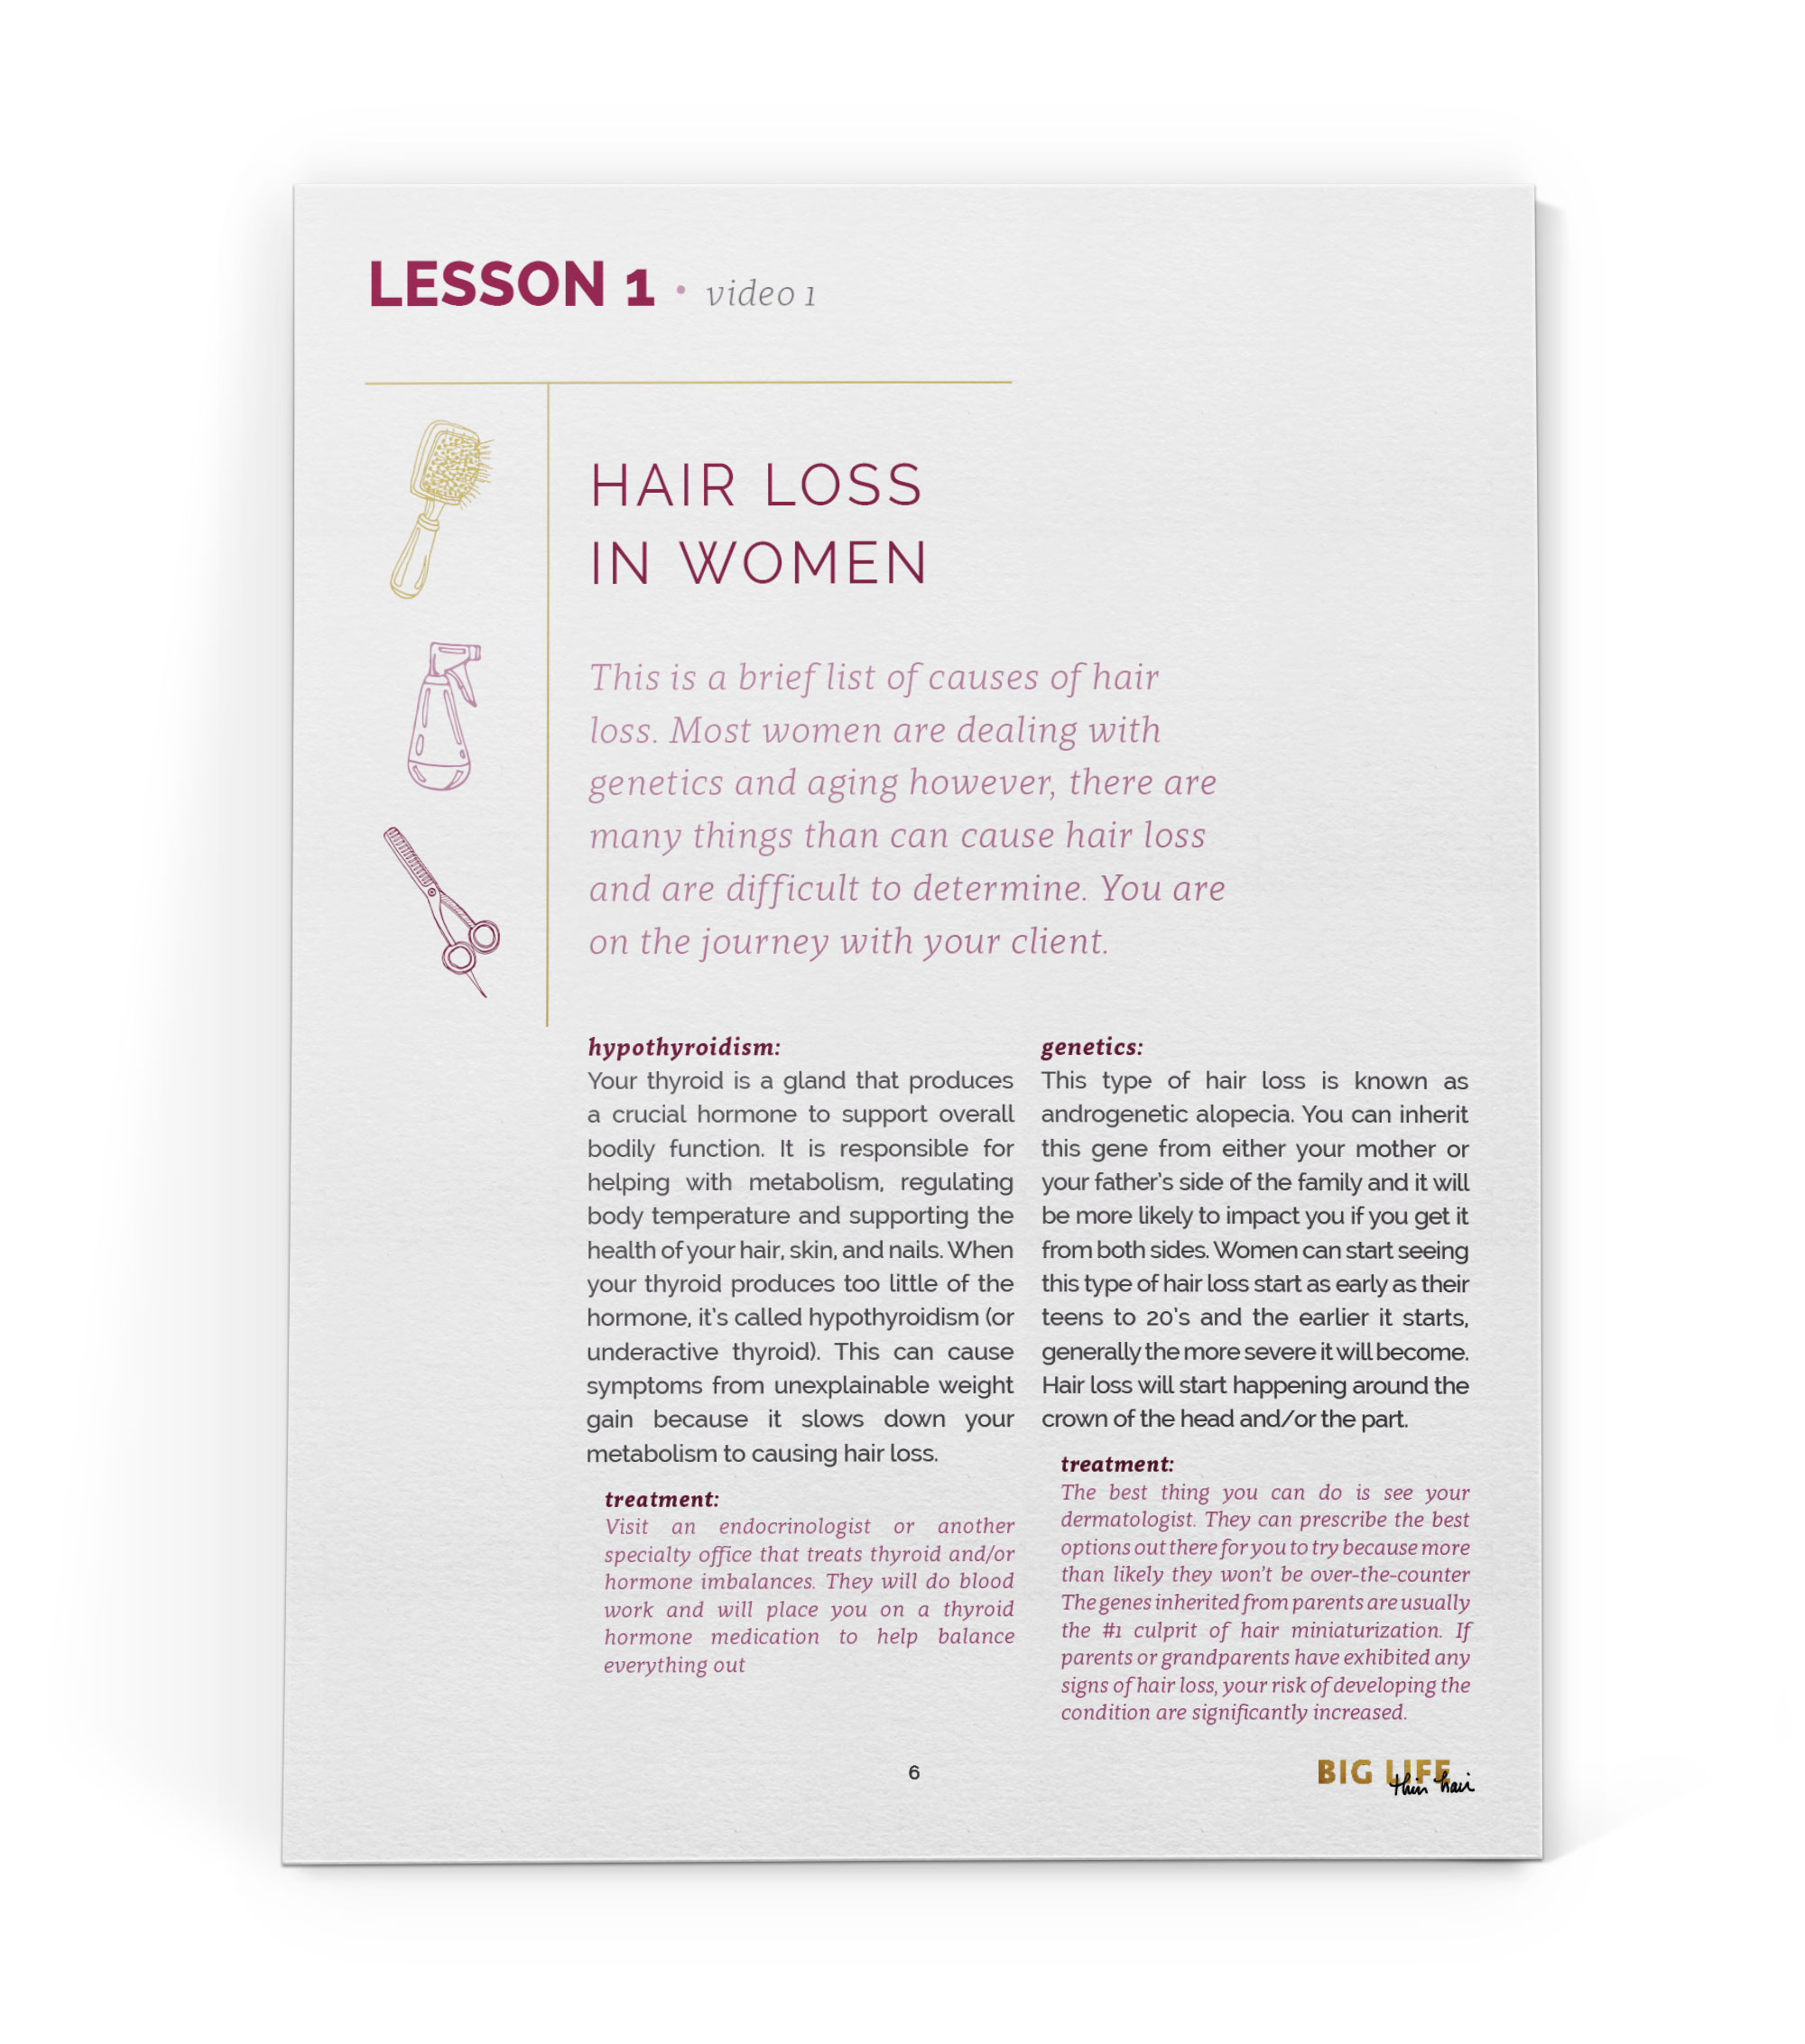 big-life-thin-hair-ebook-layout-design-4.jpg